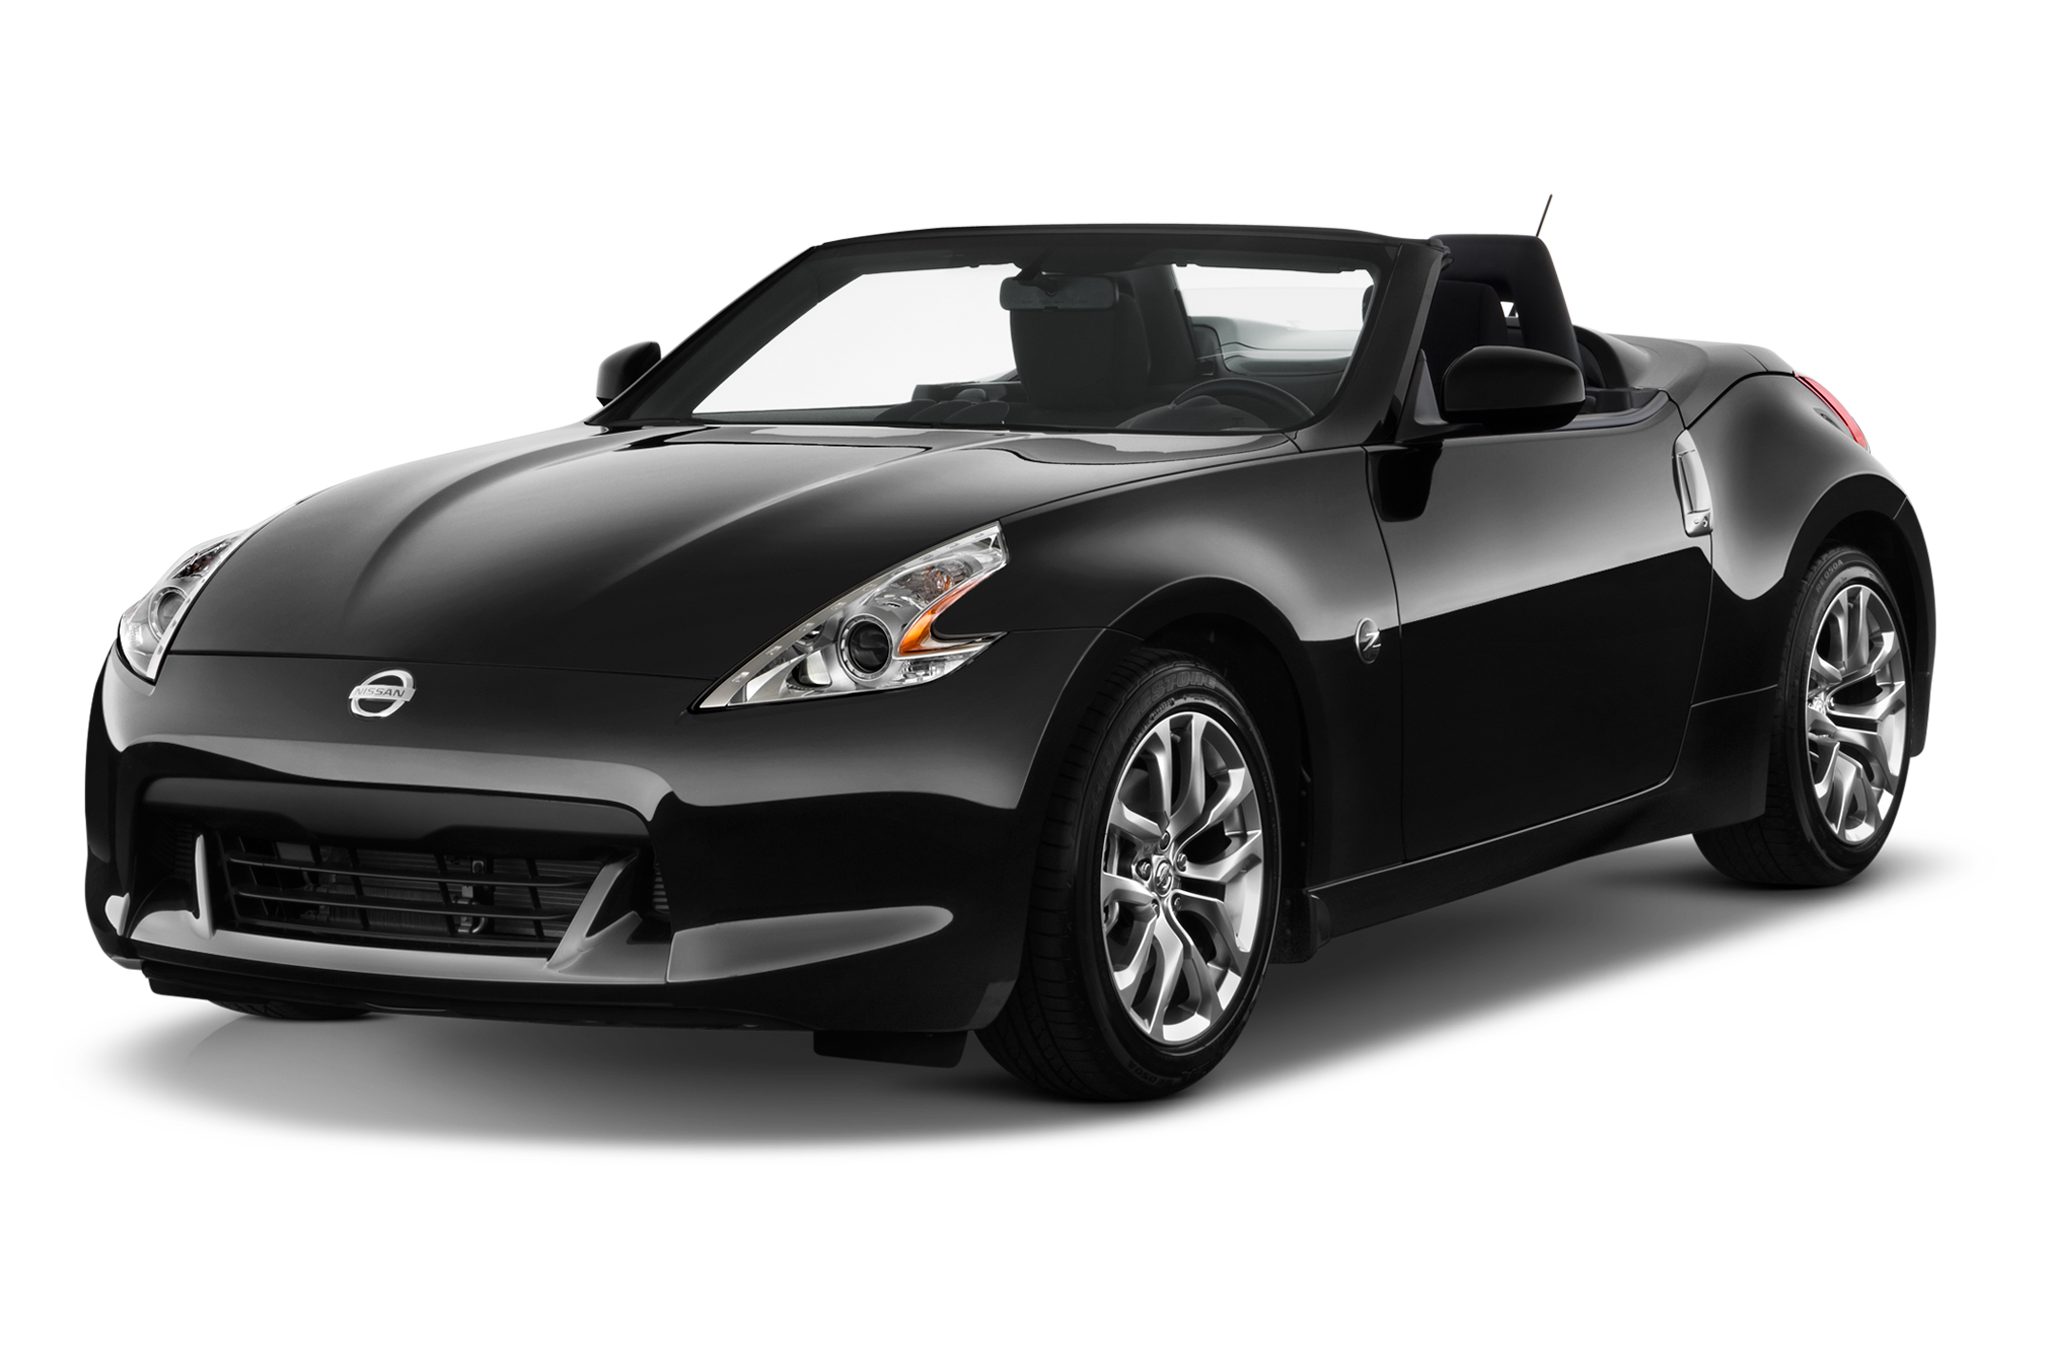 nissan 370z used car malaysia autos post. Black Bedroom Furniture Sets. Home Design Ideas